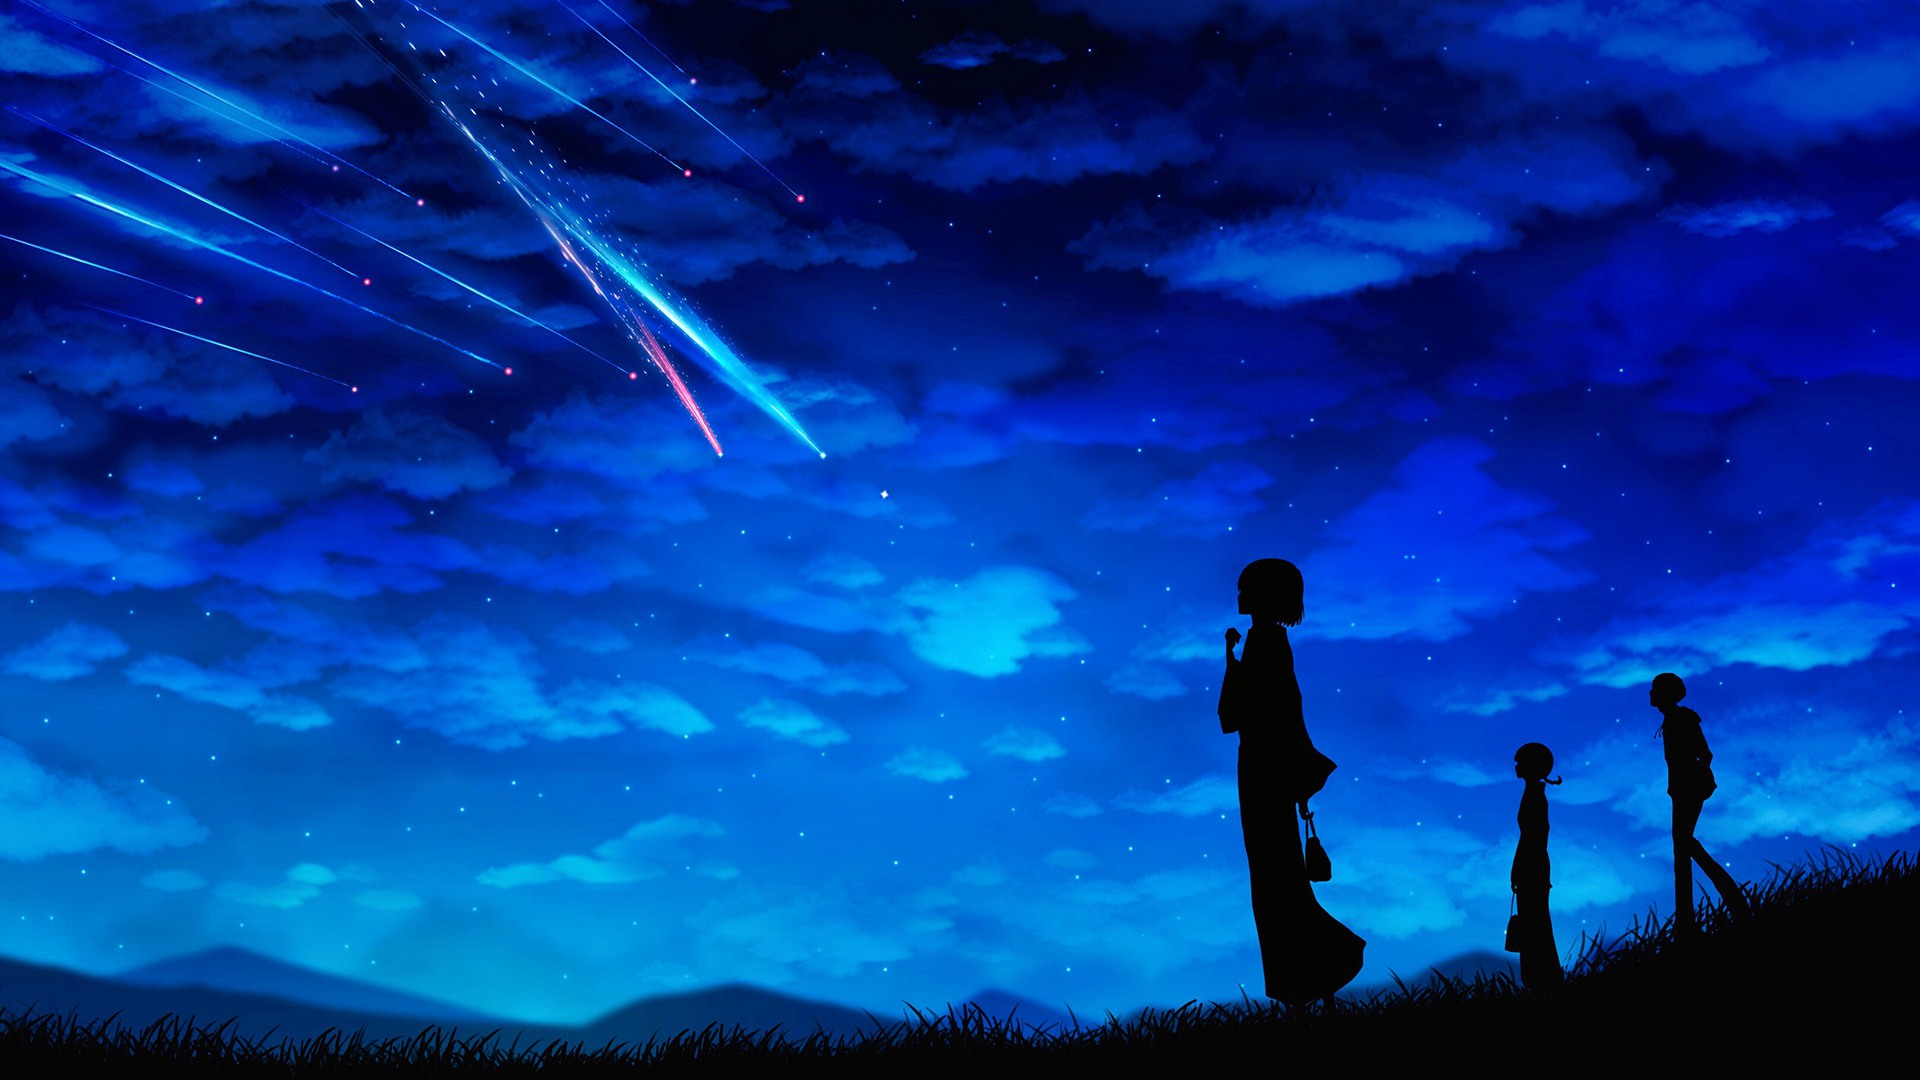 Anime Night Scenery Wallpapers Top Free Anime Night